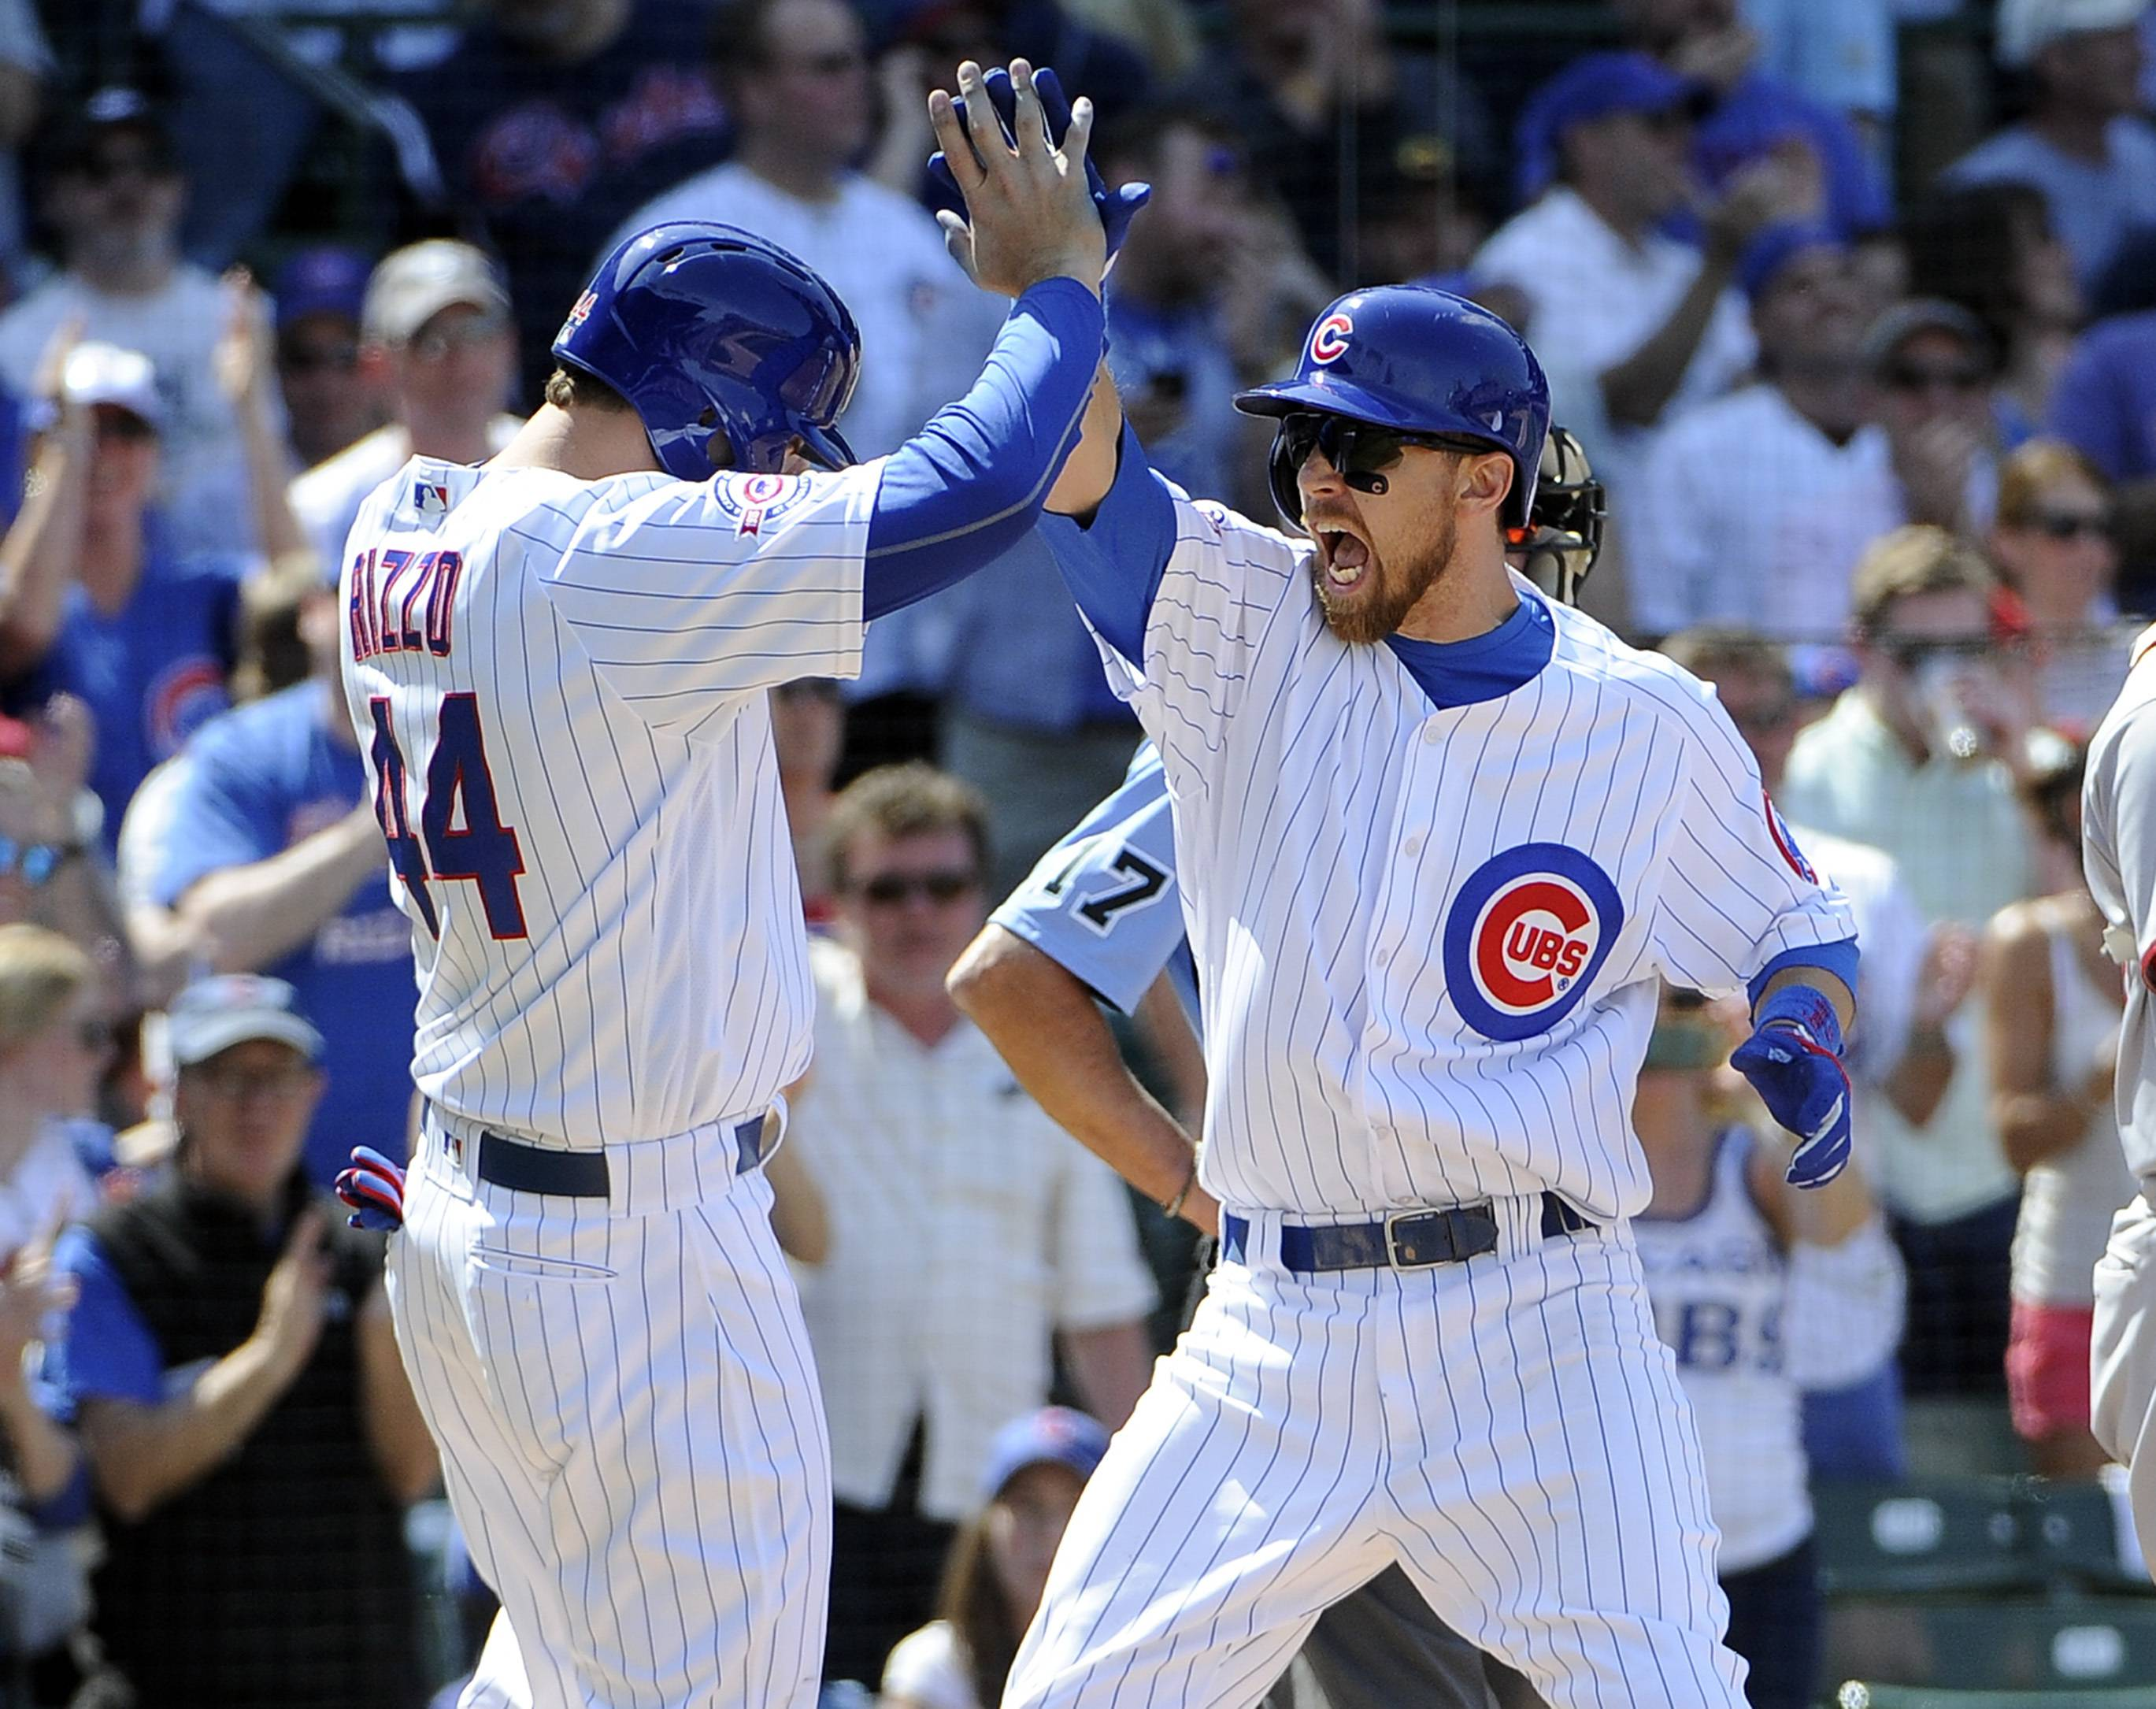 Chicago Cubs' Ben Zobrist, right, is greeted by Anthony Rizzo (44) after hitting a three-run homer against the Washington Nationals during the fifth inning at Wrigley Field on Friday.